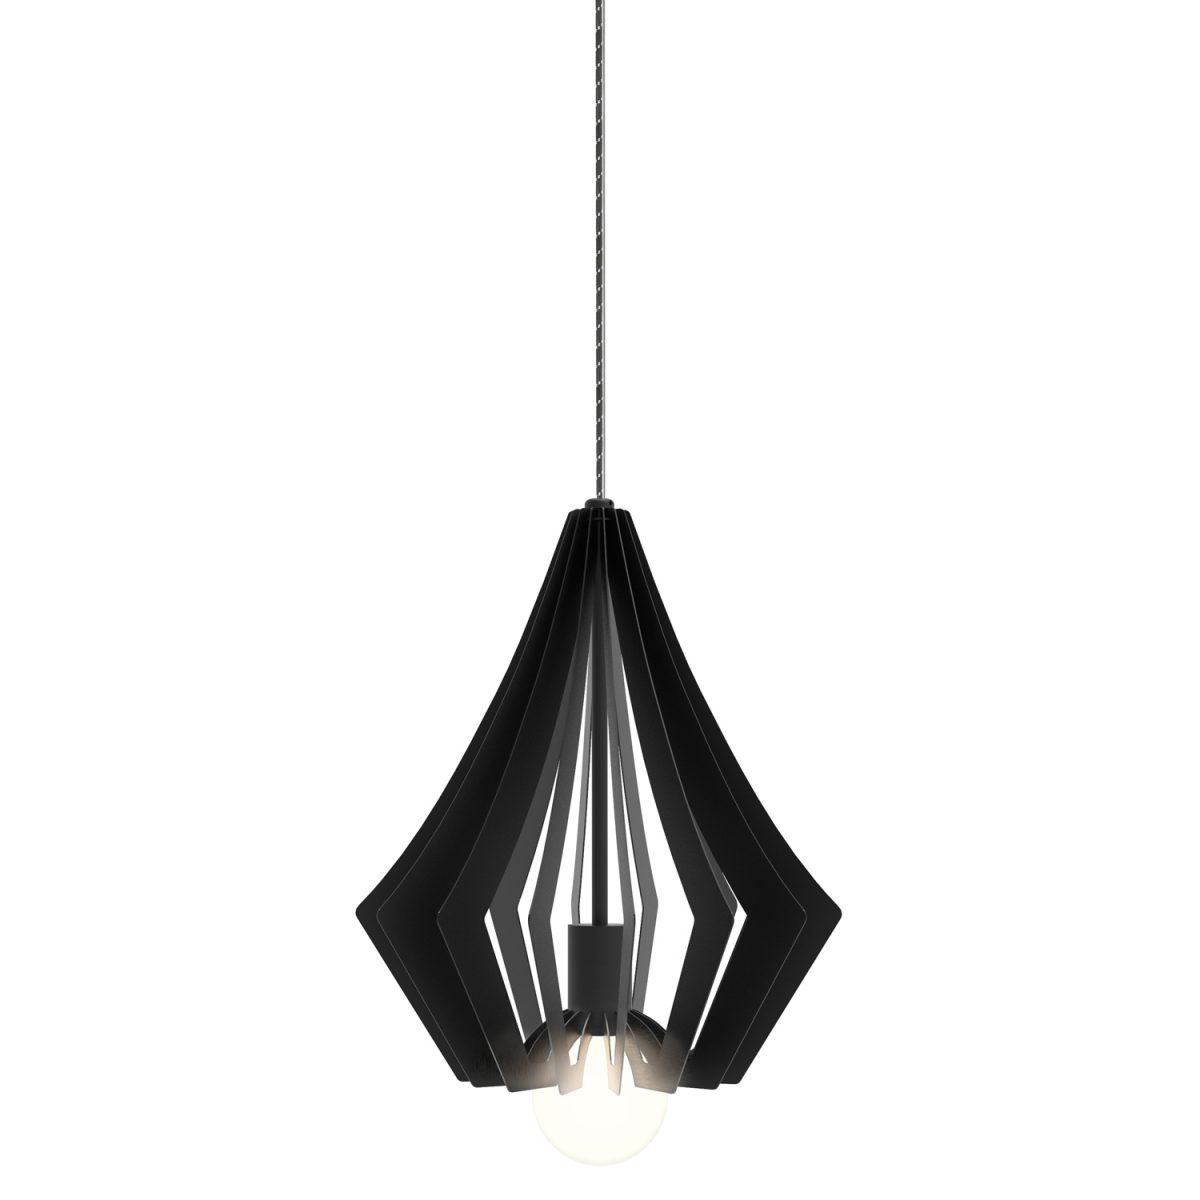 JSPR Beaudine I Black Opaque Zwart Project Verlichting Dutch Design